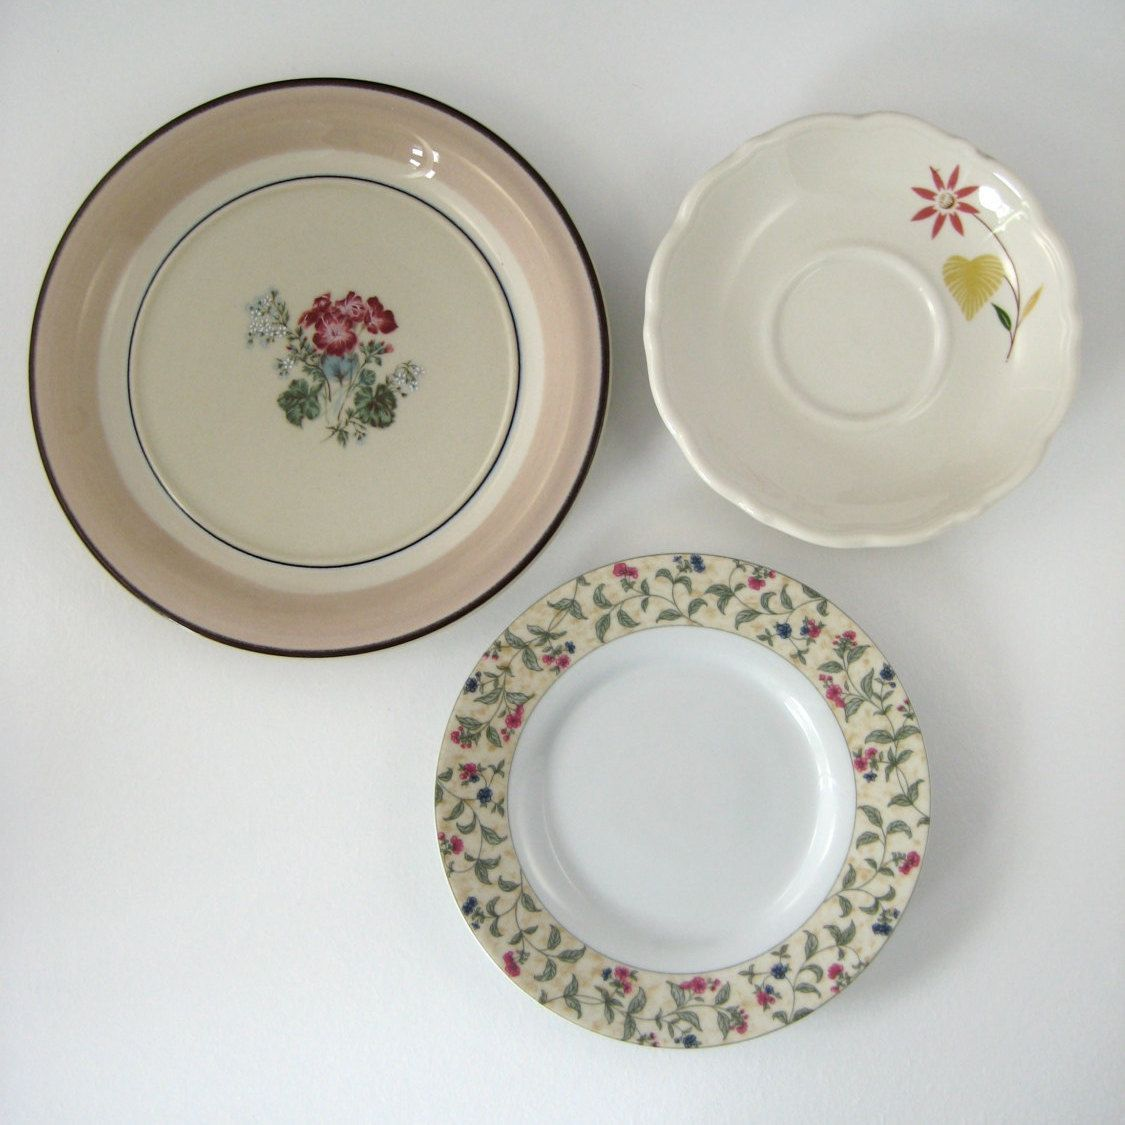 Home Decor Plates Decorative Plates Kitchen Wall Decor Shabby Chic Cottage Home